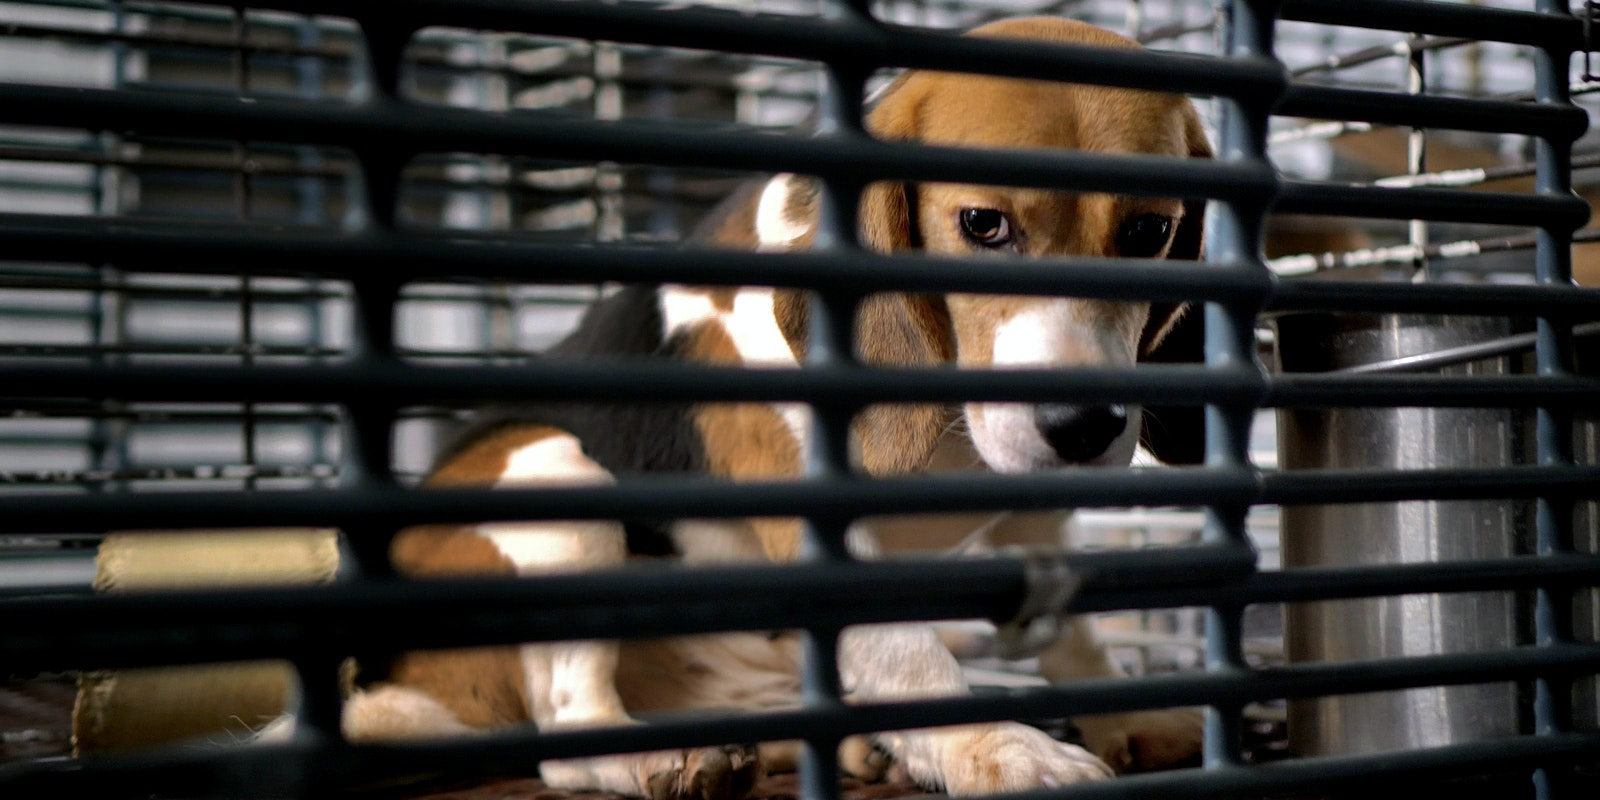 18: The Truth About Animal Shelters in the USA (ARTICLE CONTAINS SHOCKING MATERIALS)